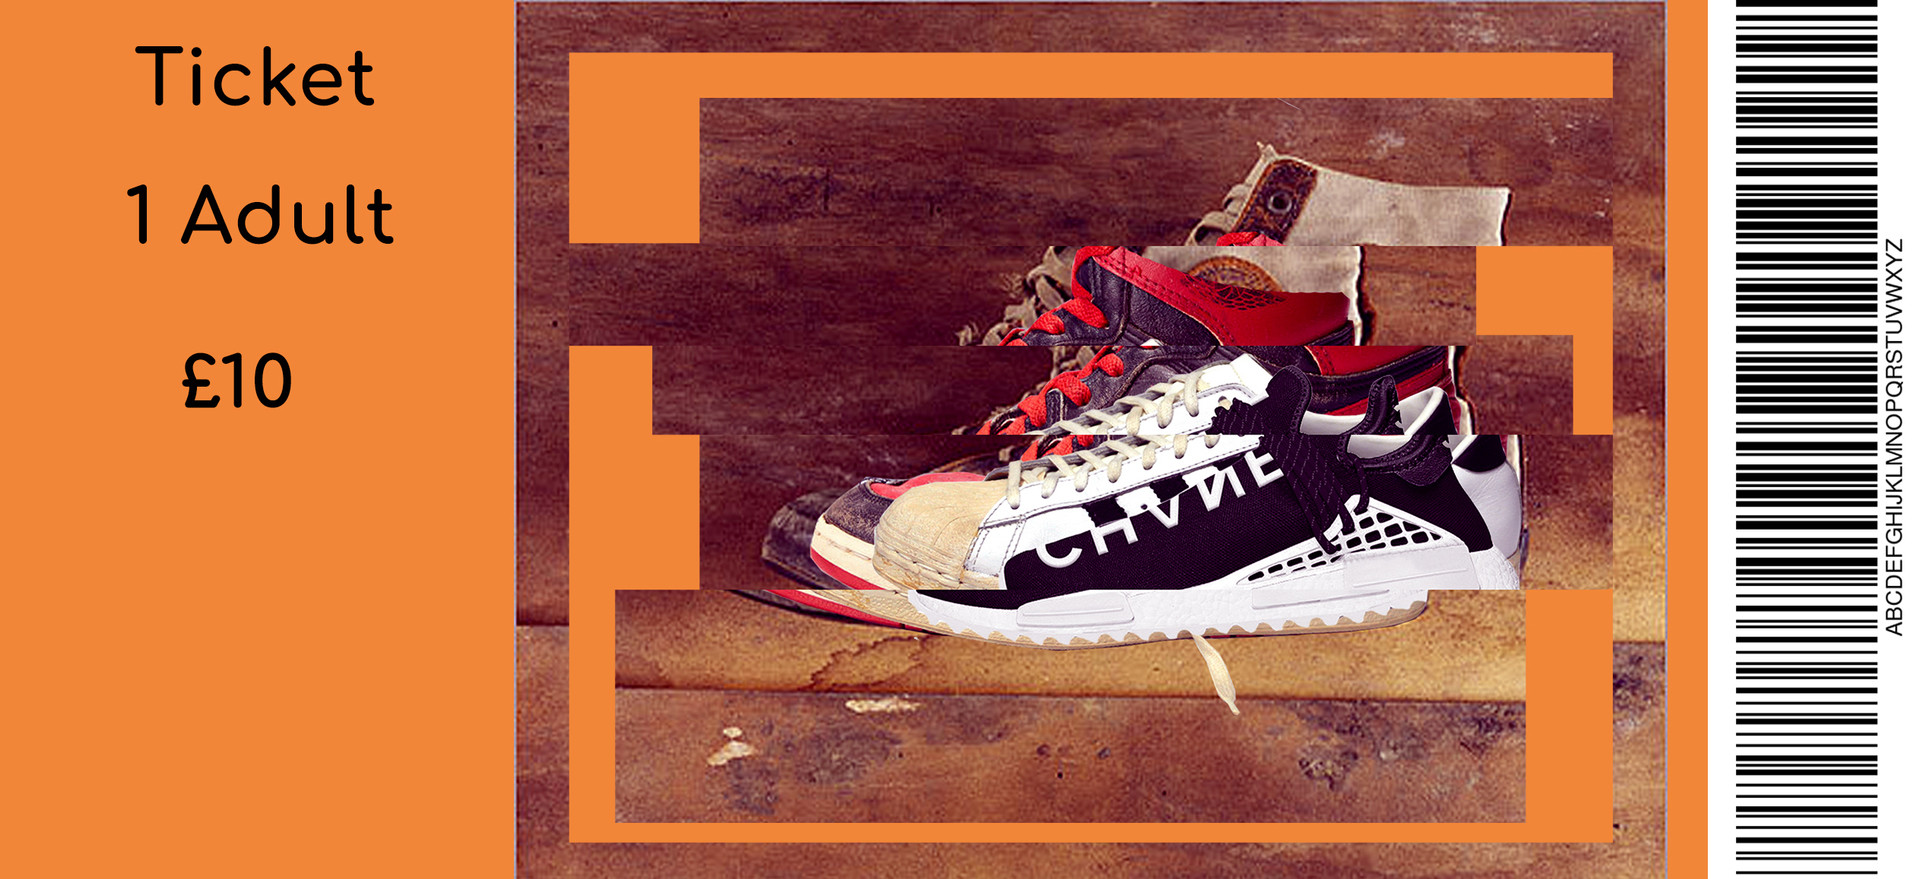 The Evolution of Sneakers Ticket design